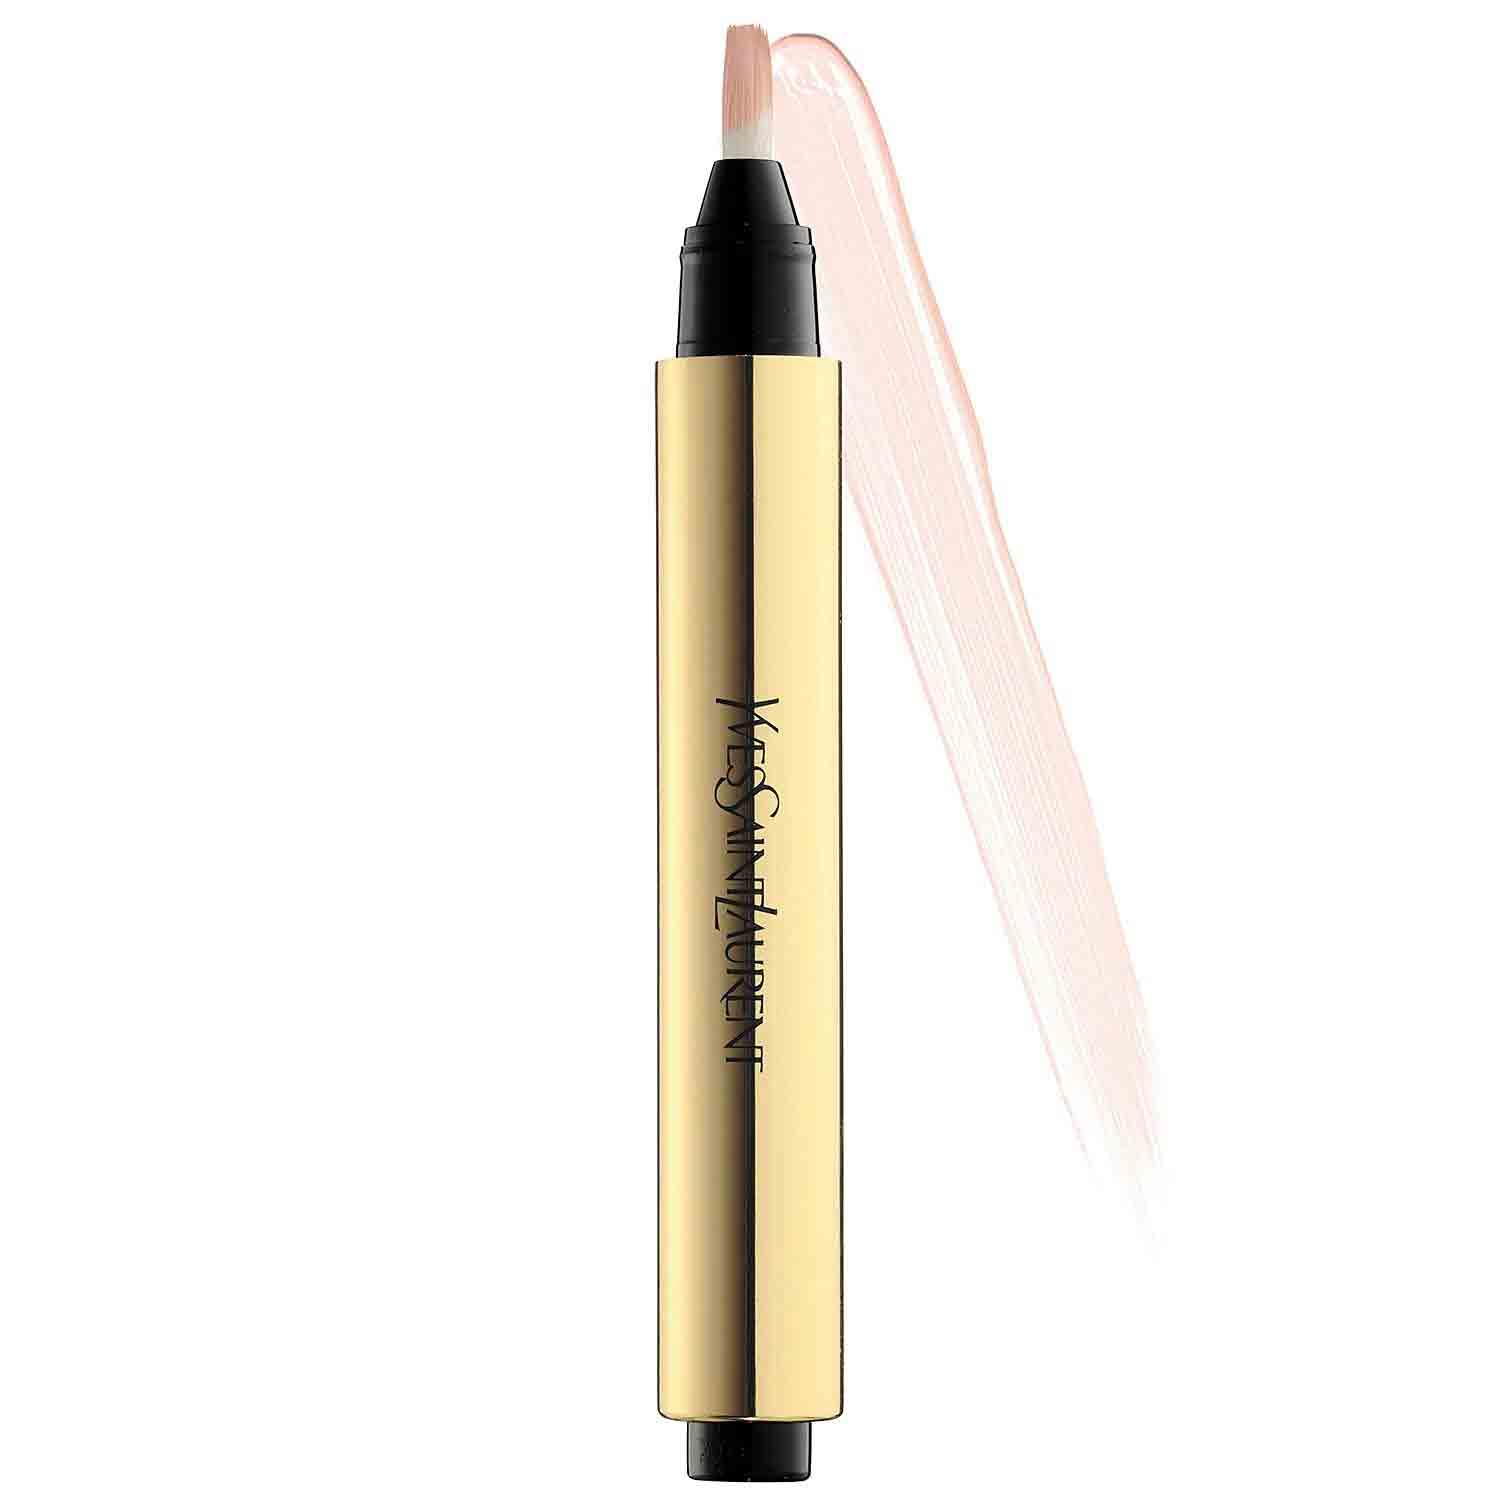 042920-touche-eclat-radiance-perfecting-pen-luminous-radiance-embed.jpg